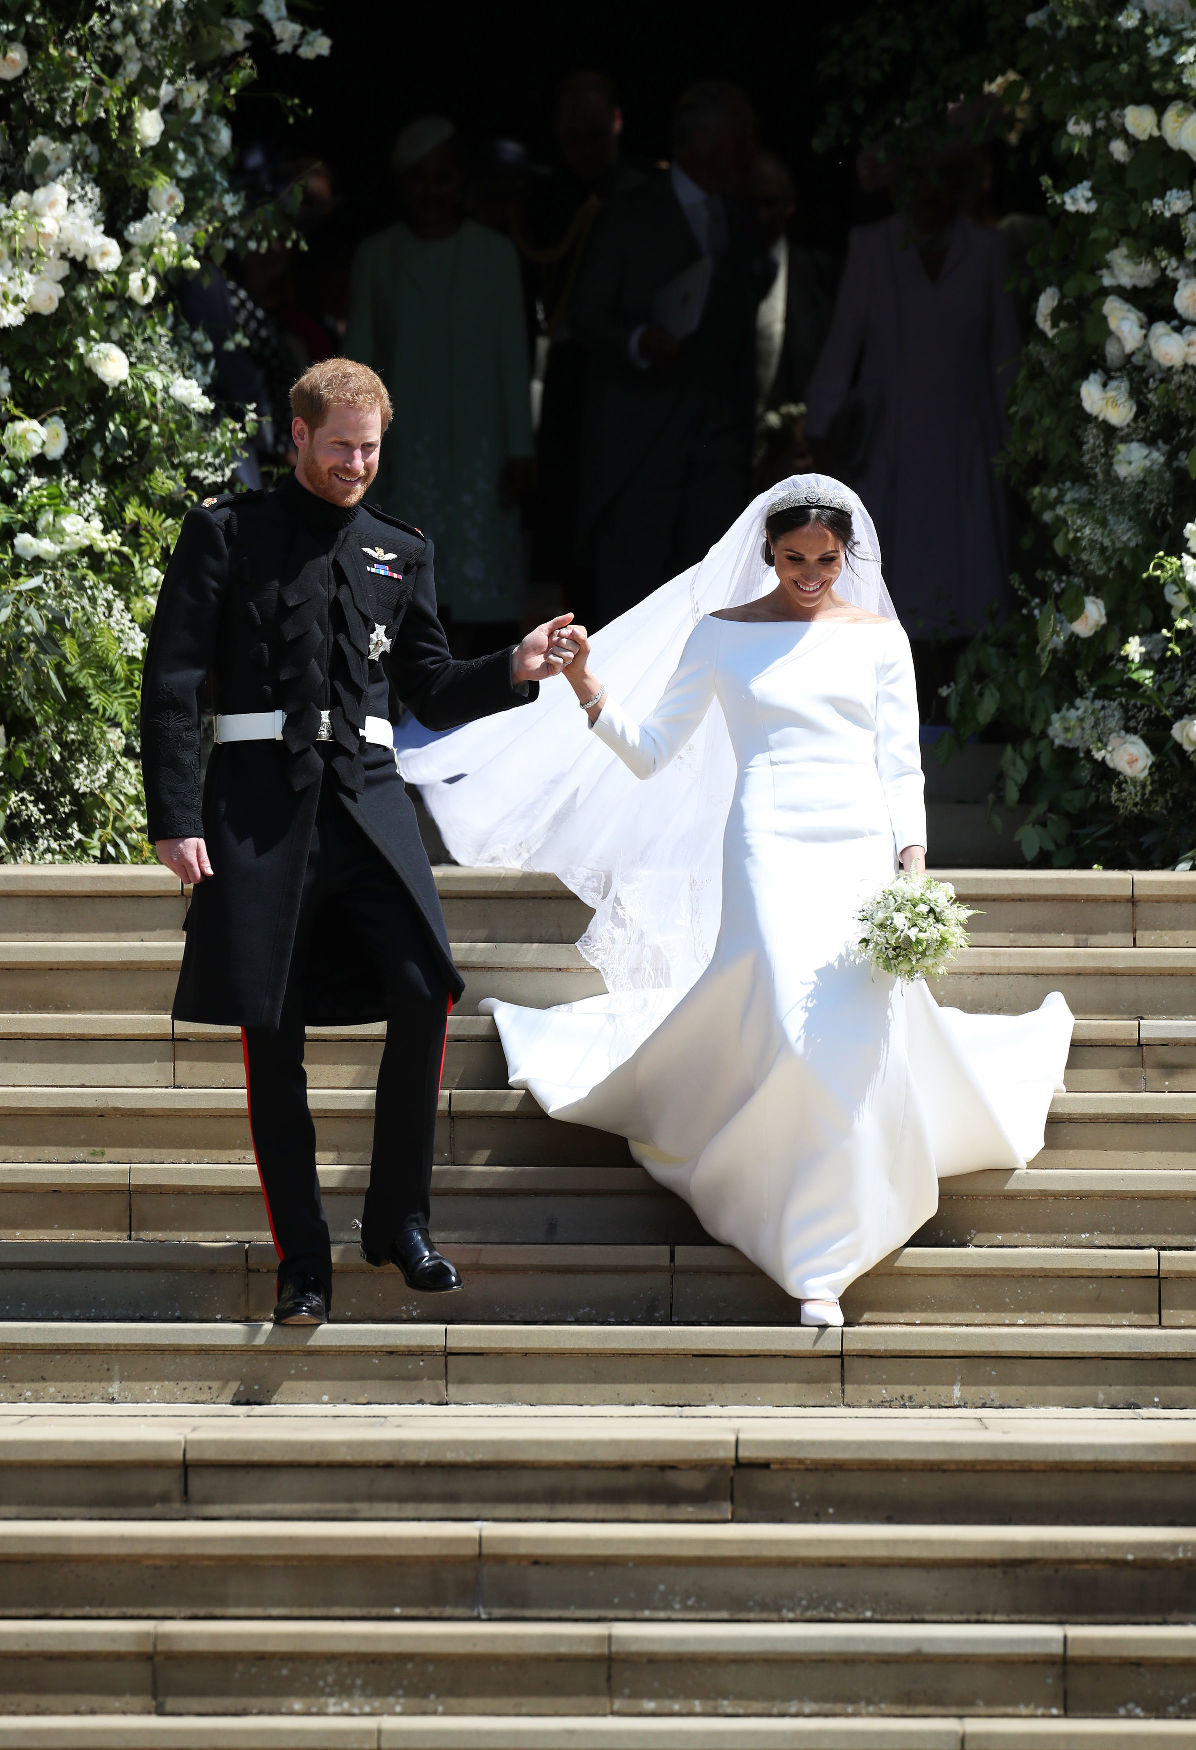 WINDSOR, UNITED KINGDOM - MAY 19:  Prince Harry and Meghan Markle leave St George's Chapel after their wedding in St George's Chapel at Windsor Castle on May 19, 2018 in Windsor, England. (Photo by Jane Barlow - WPA Pool/Getty Images)